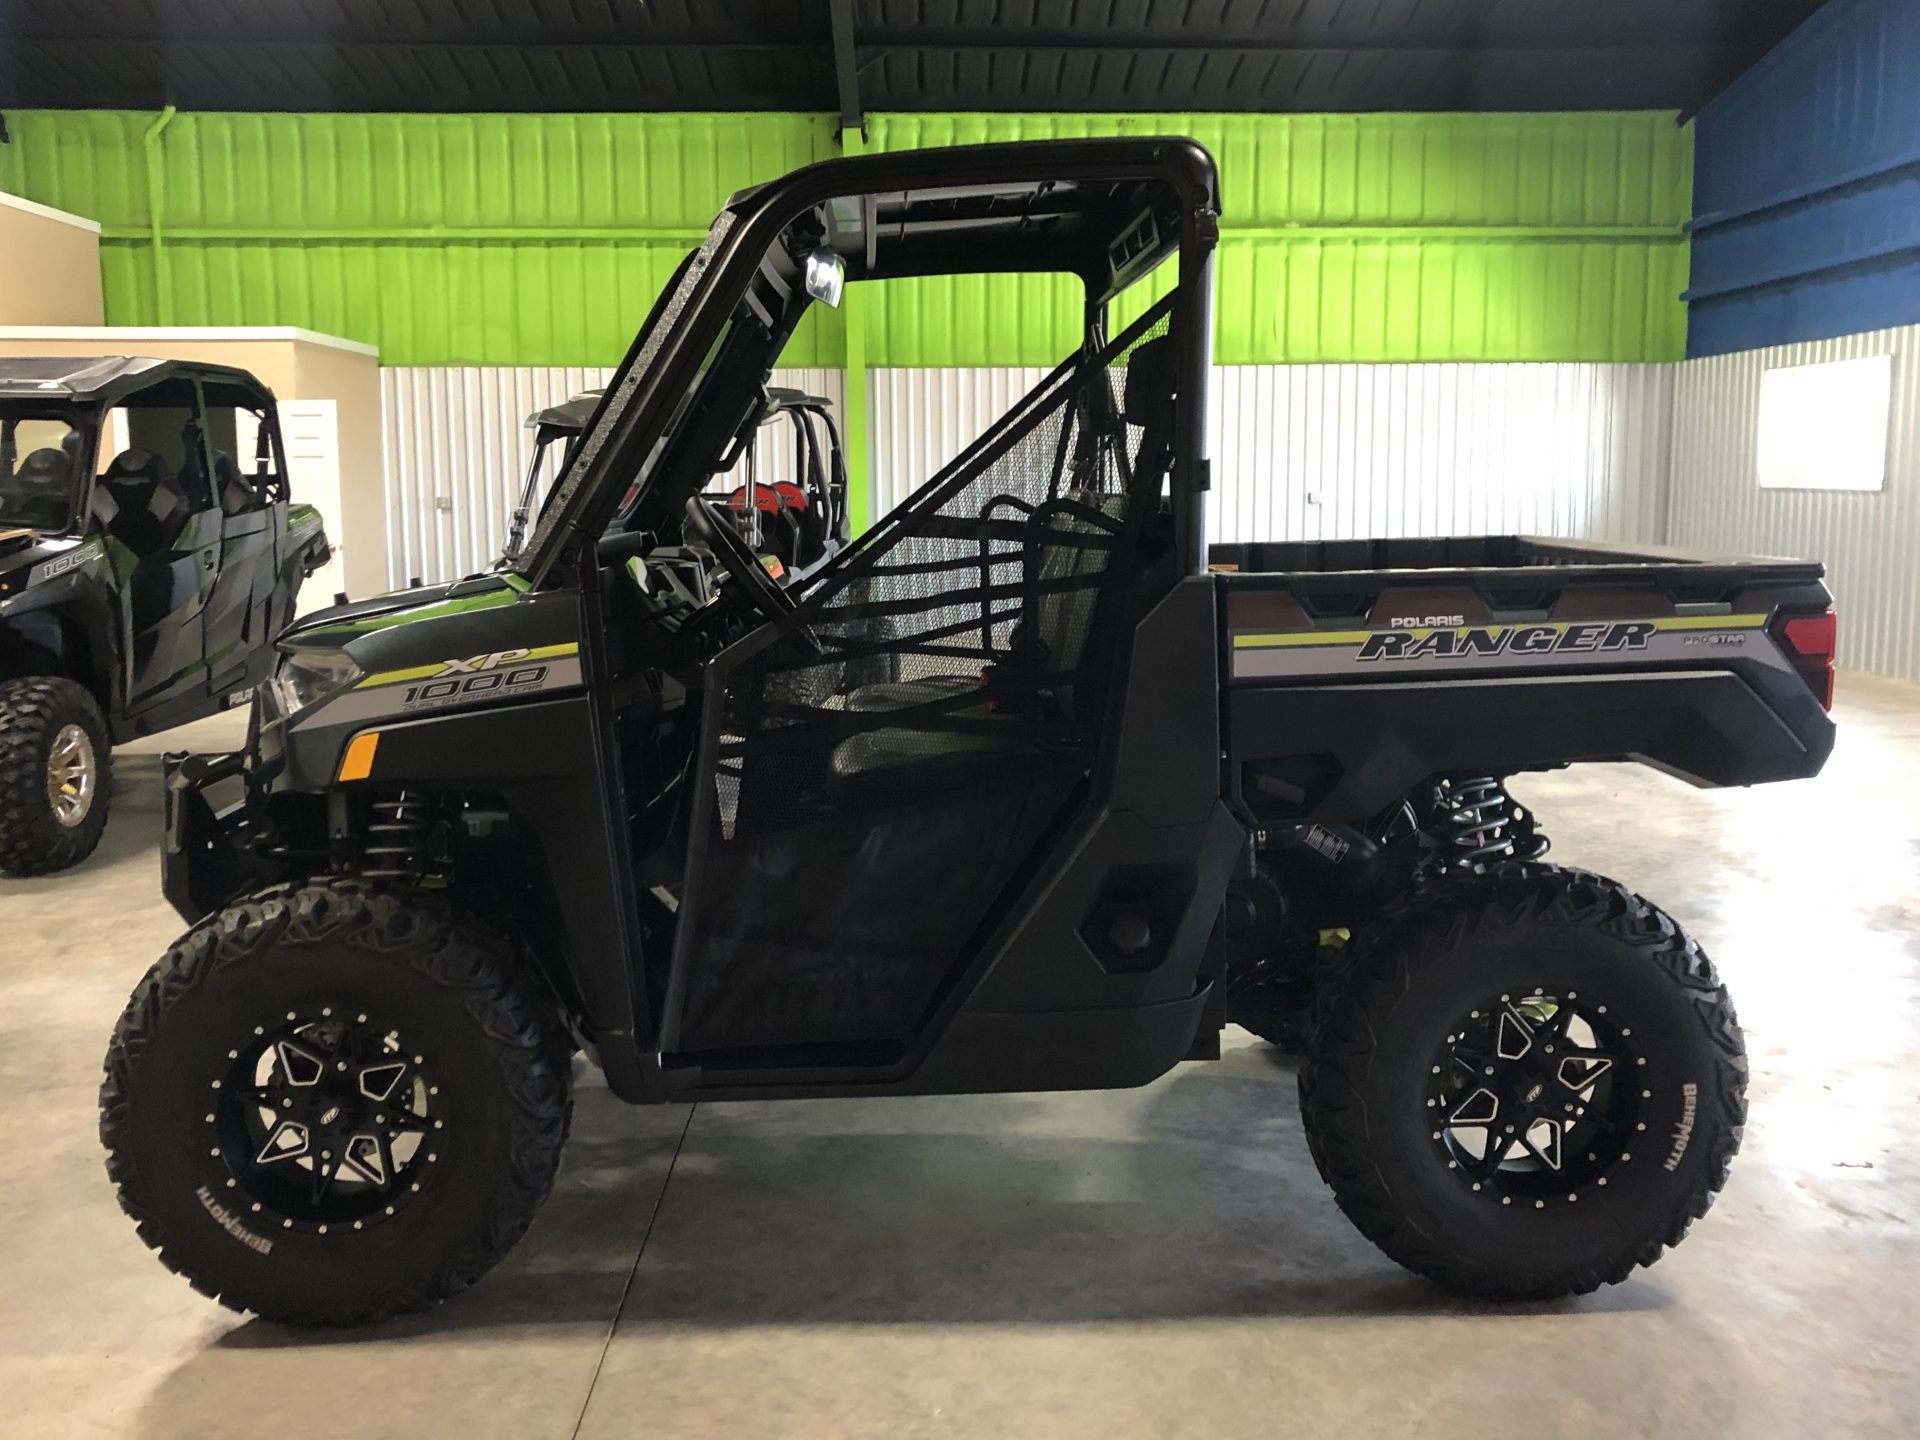 2019 Polaris Ranger 900 XP LE Image